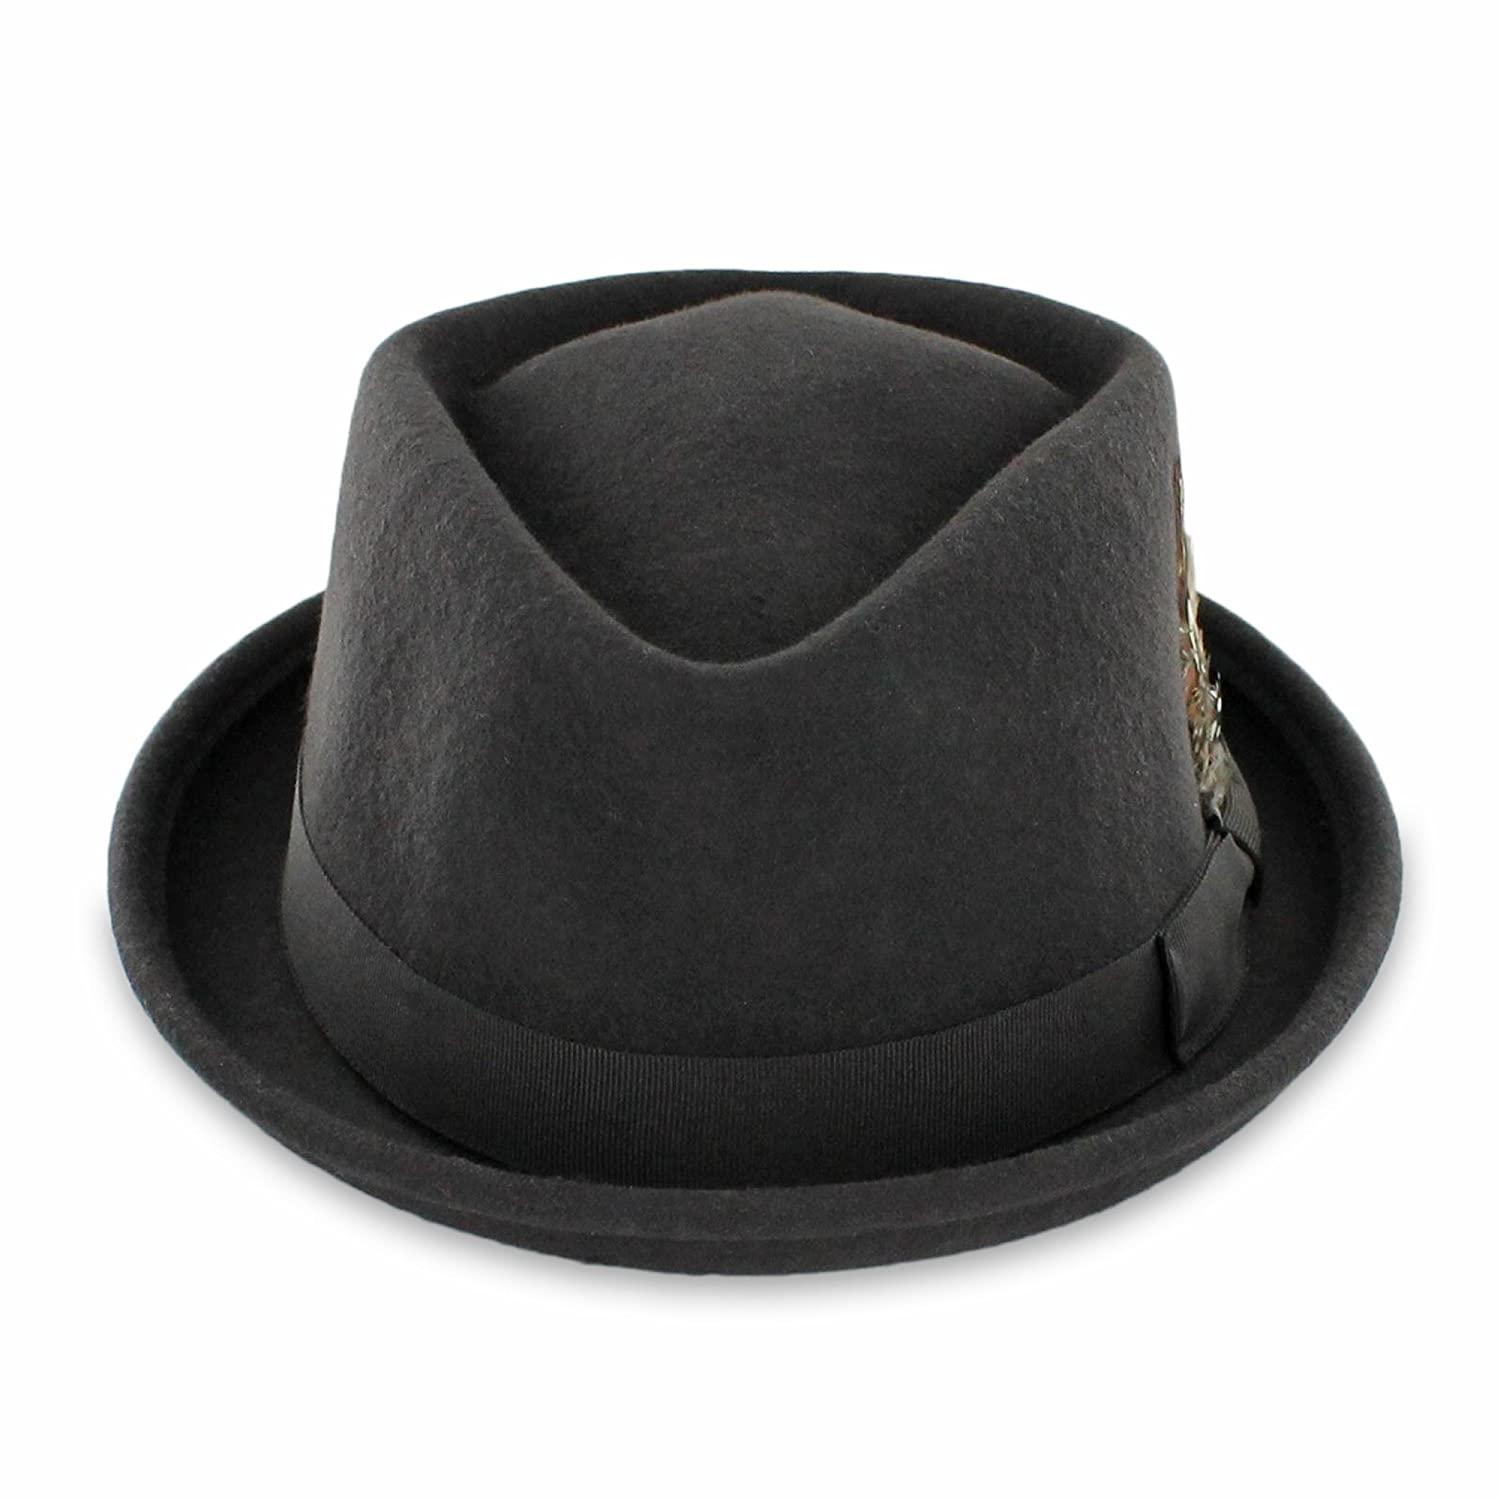 0cbb42dd9 Belfry Crushable Porkpie Fedora Hat Men's Vintage Style 100% Pure Wool in  Black Brown Grey Navy Pecan and Striped Band